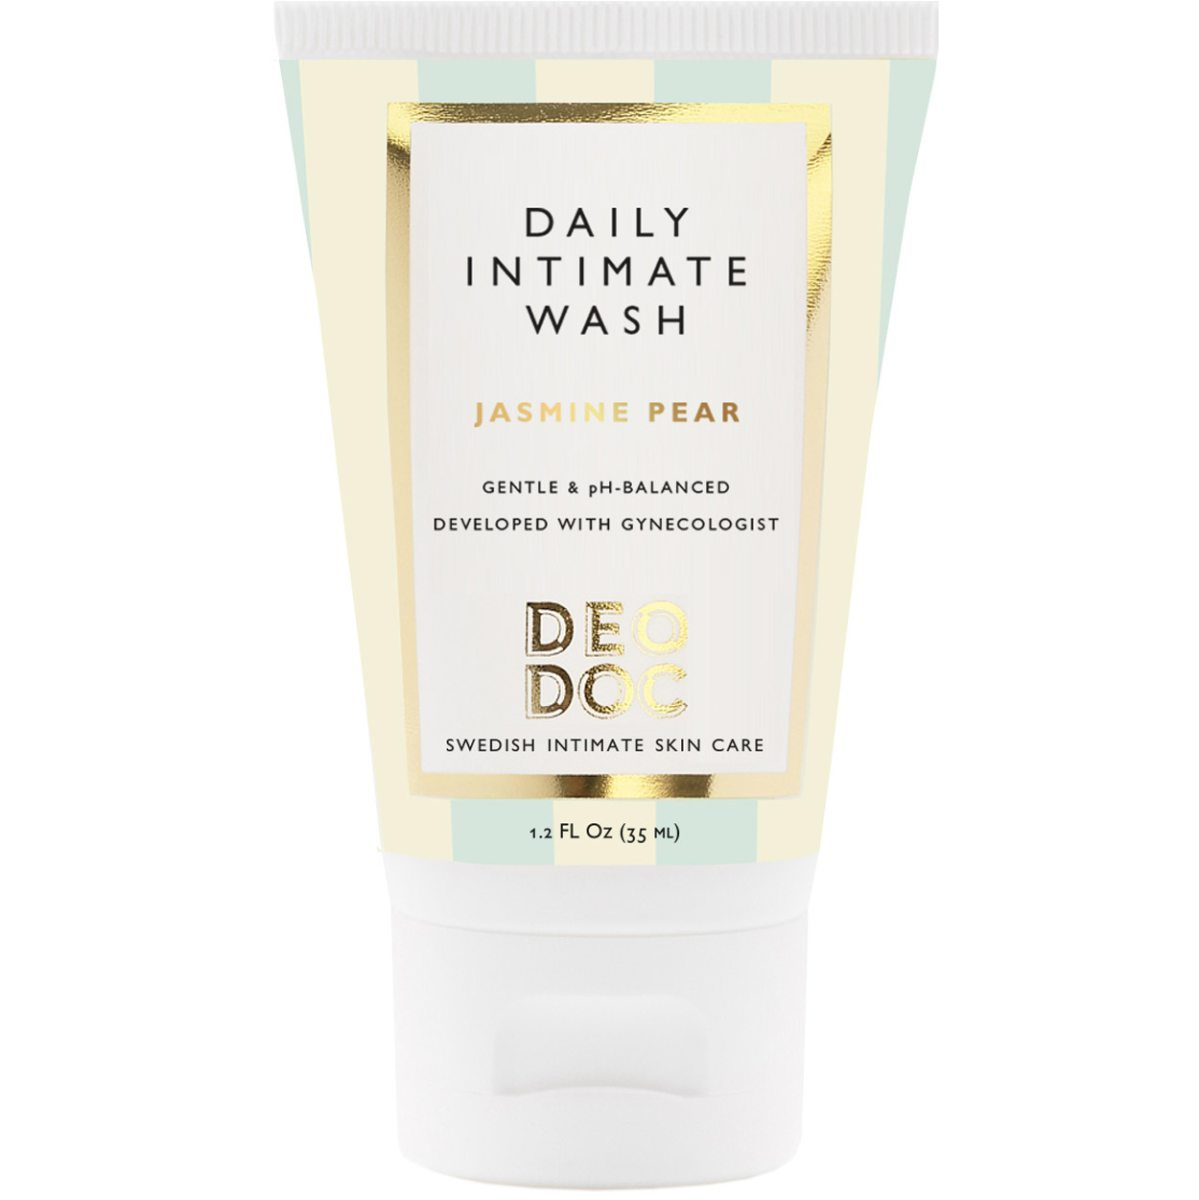 Deodoc Intimtval Daily Intimate Wash